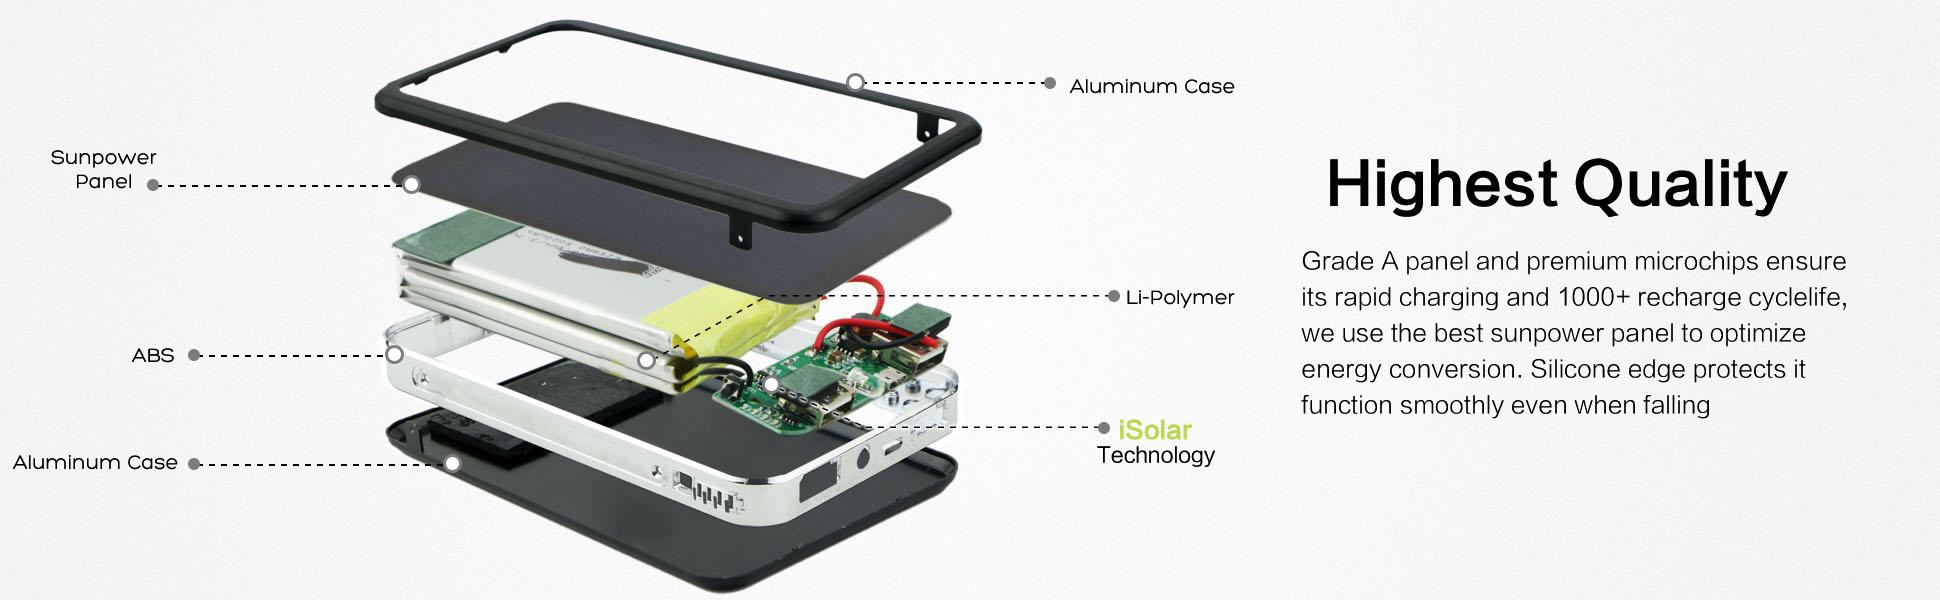 allpowers 15000mah sunpower solar panel charger with 3 4a quick charge